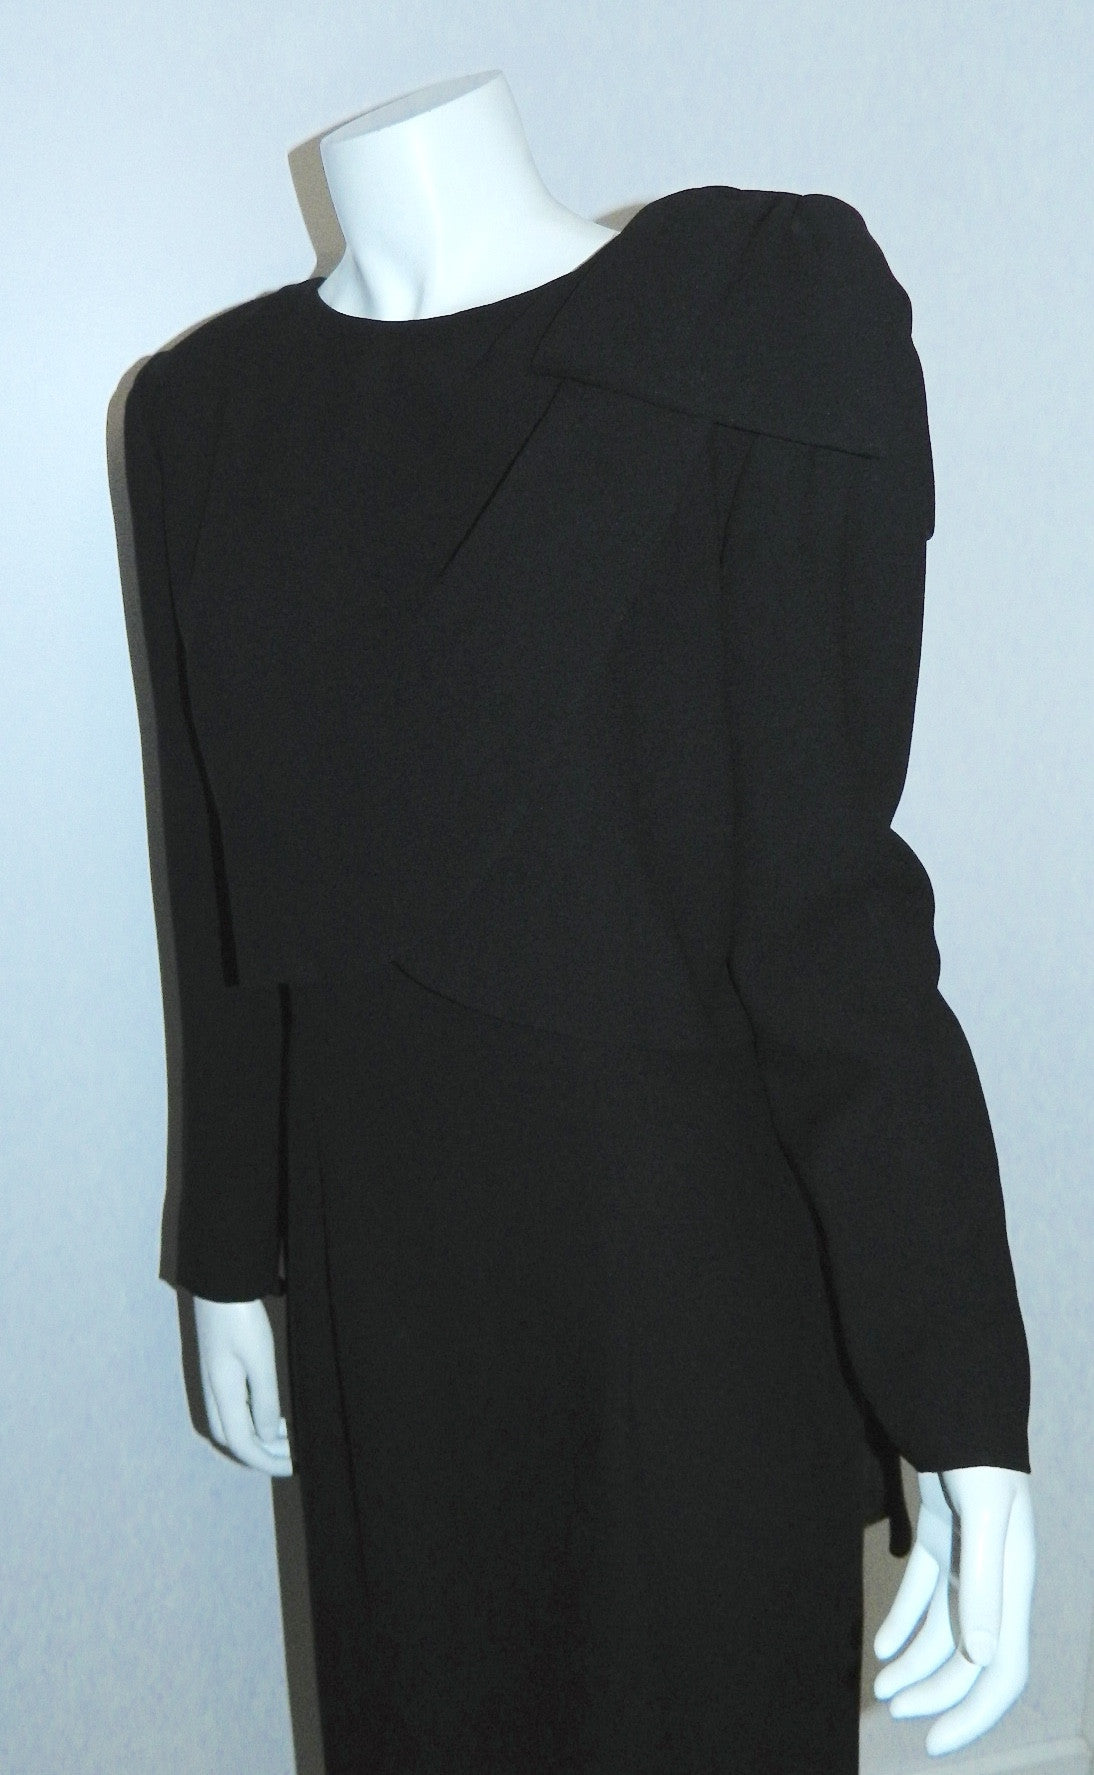 vintage 1980s black crepe dress Christian Dior side bow drape cocktail dress